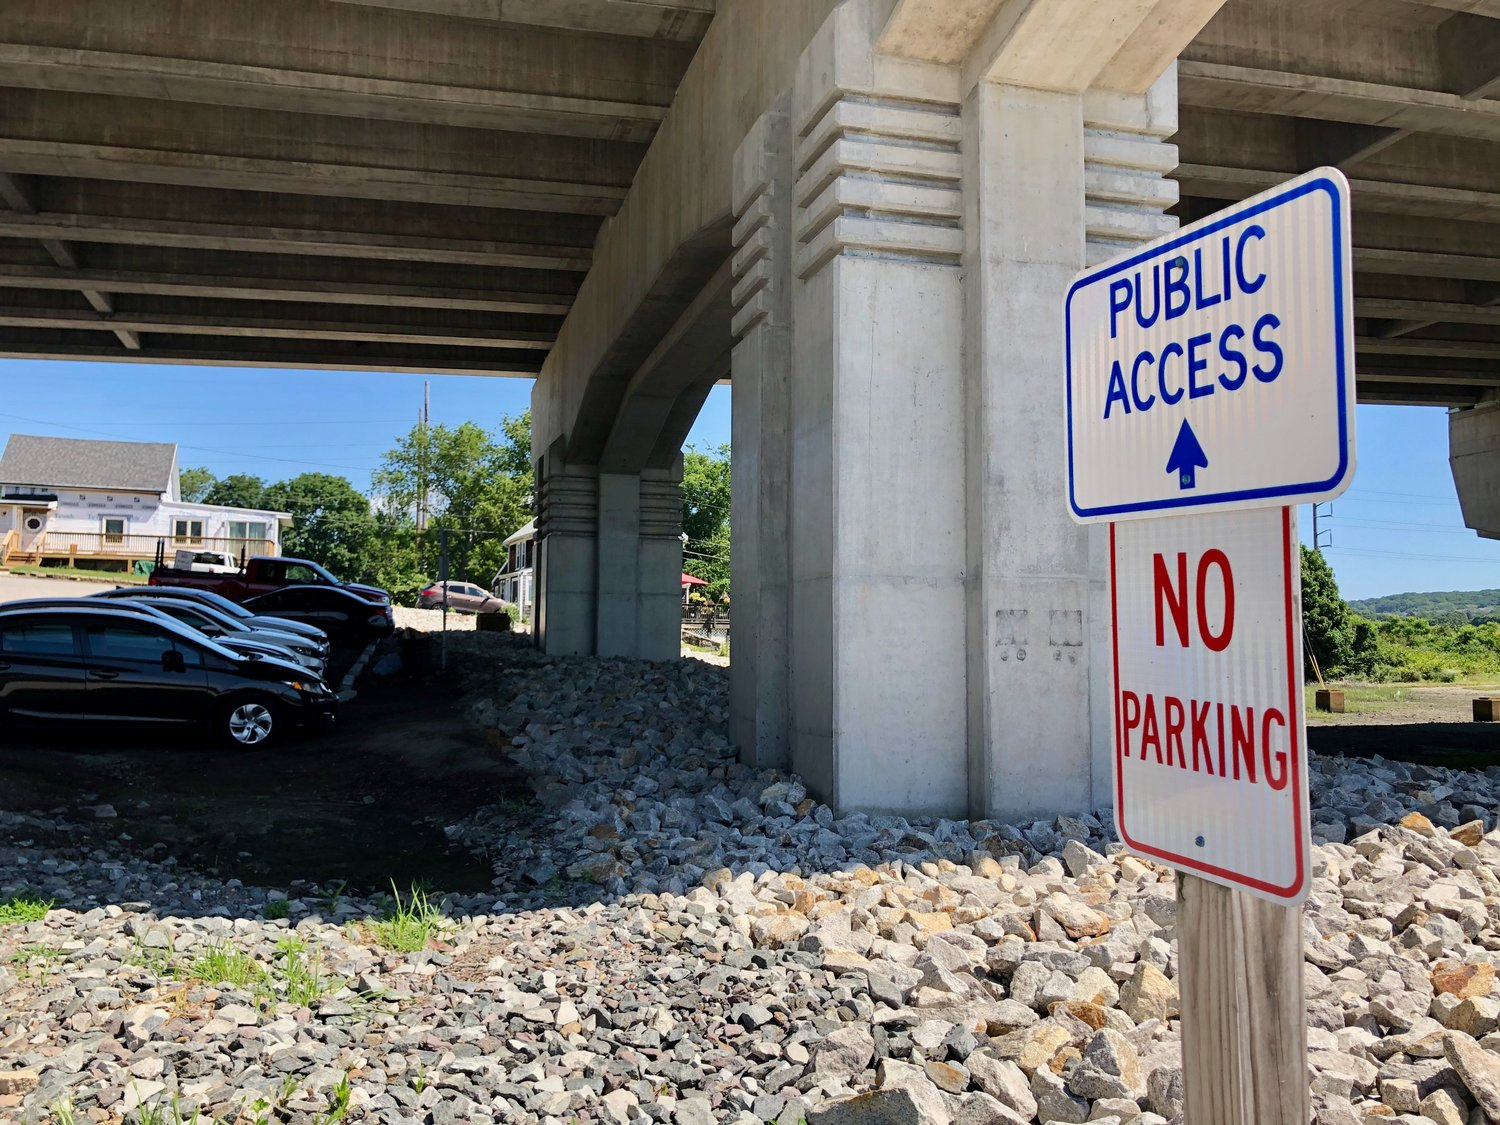 A sign erected by the state marks the public access point under the Sakonnet River Bridge. A potion of a legal parking lot is at left.